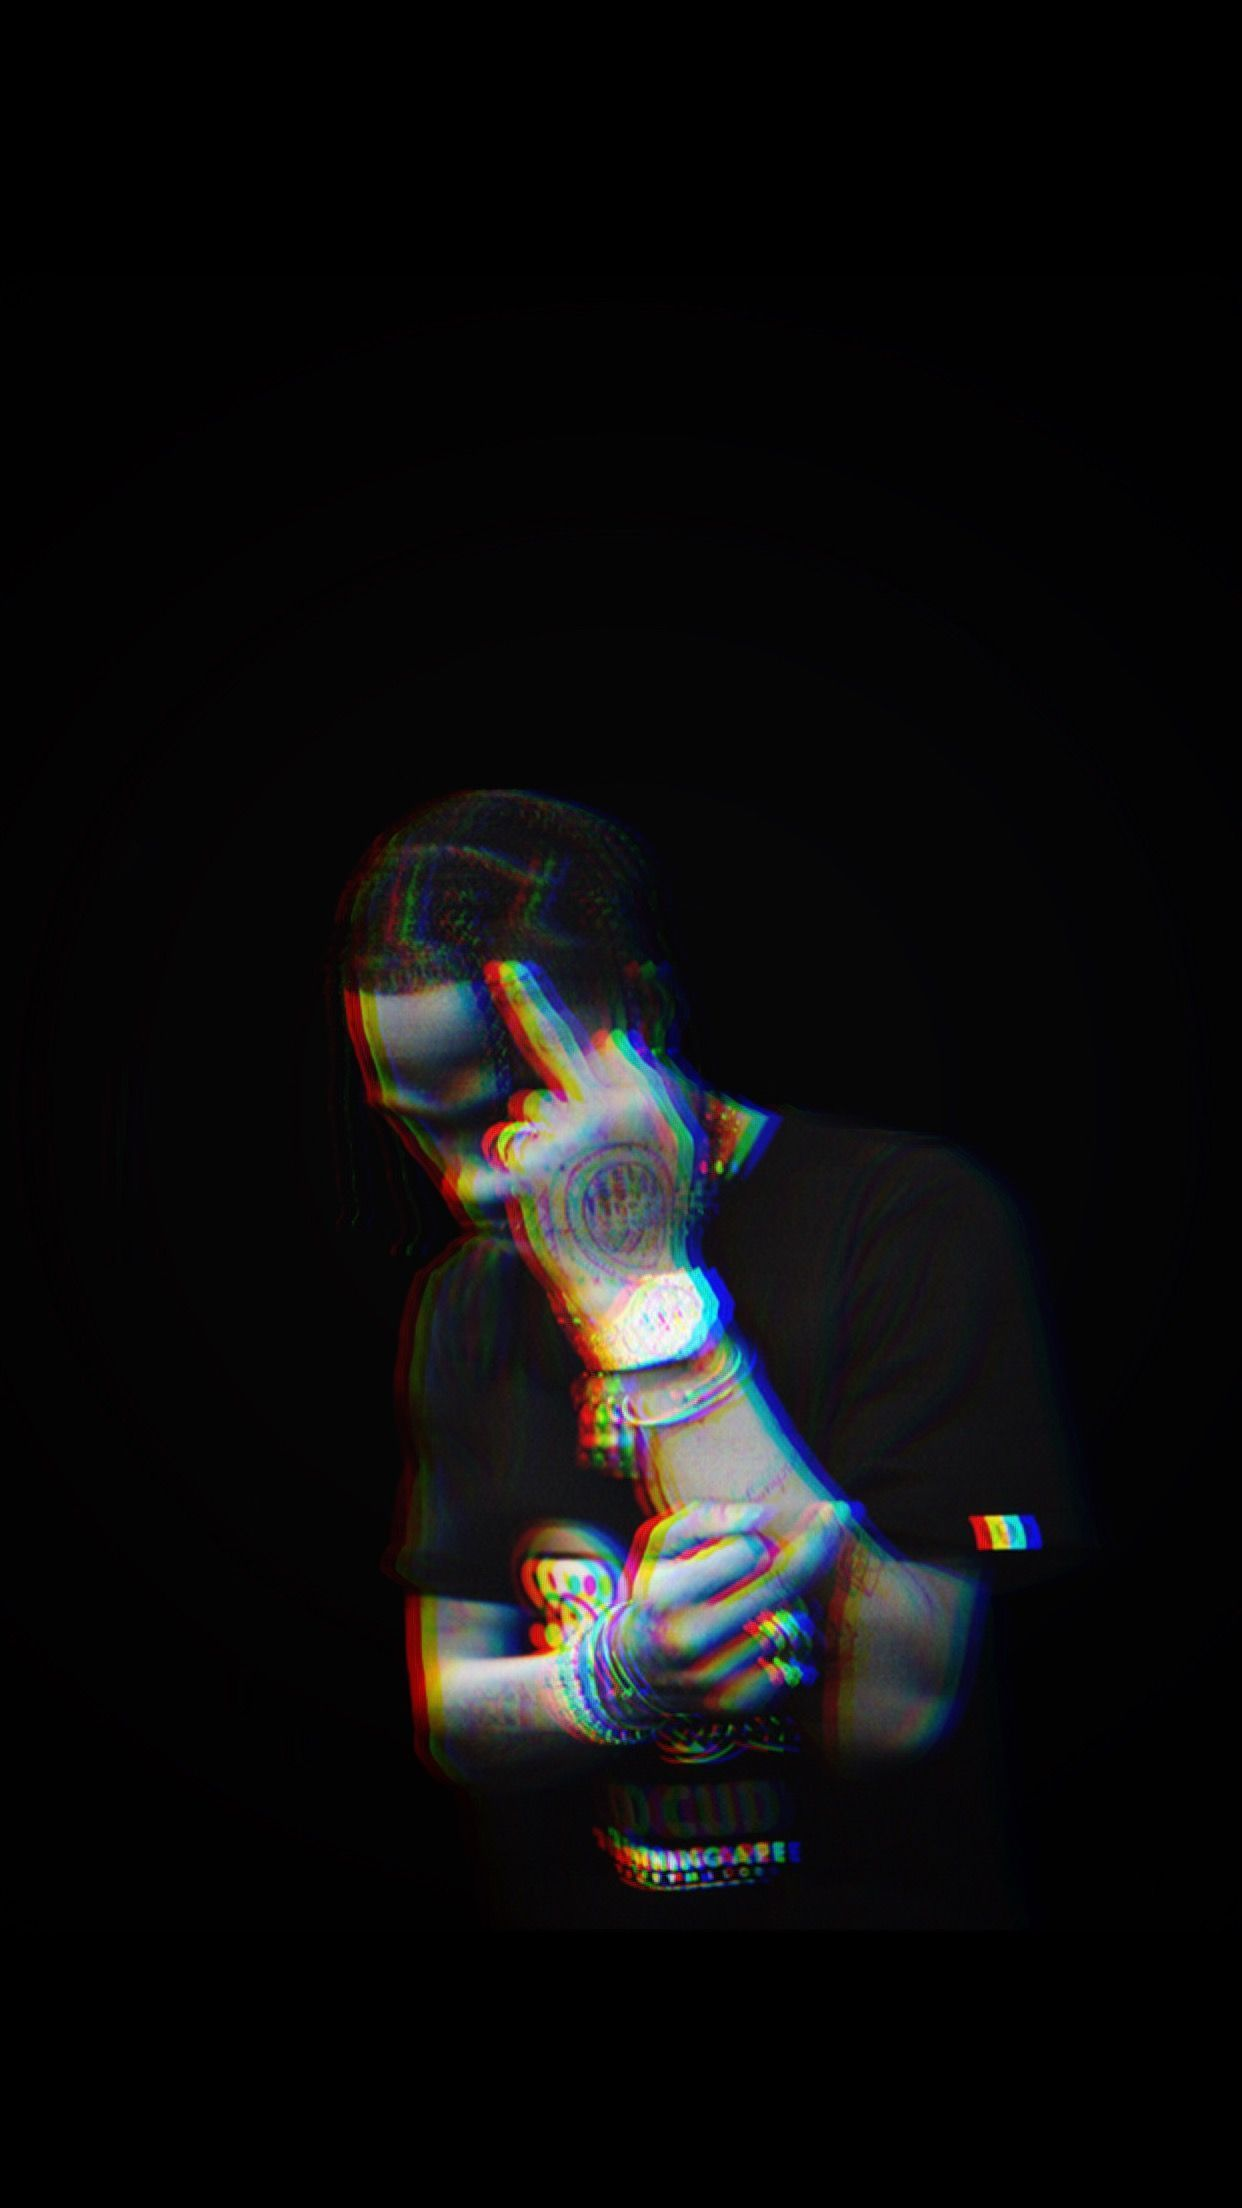 Travis Scott Travisscottwallpapers Travis Scott Travisscottwallpapers Travis Scott Travisscottwallpape Travis Scott Wallpapers Travis Scott Travis Scott Art